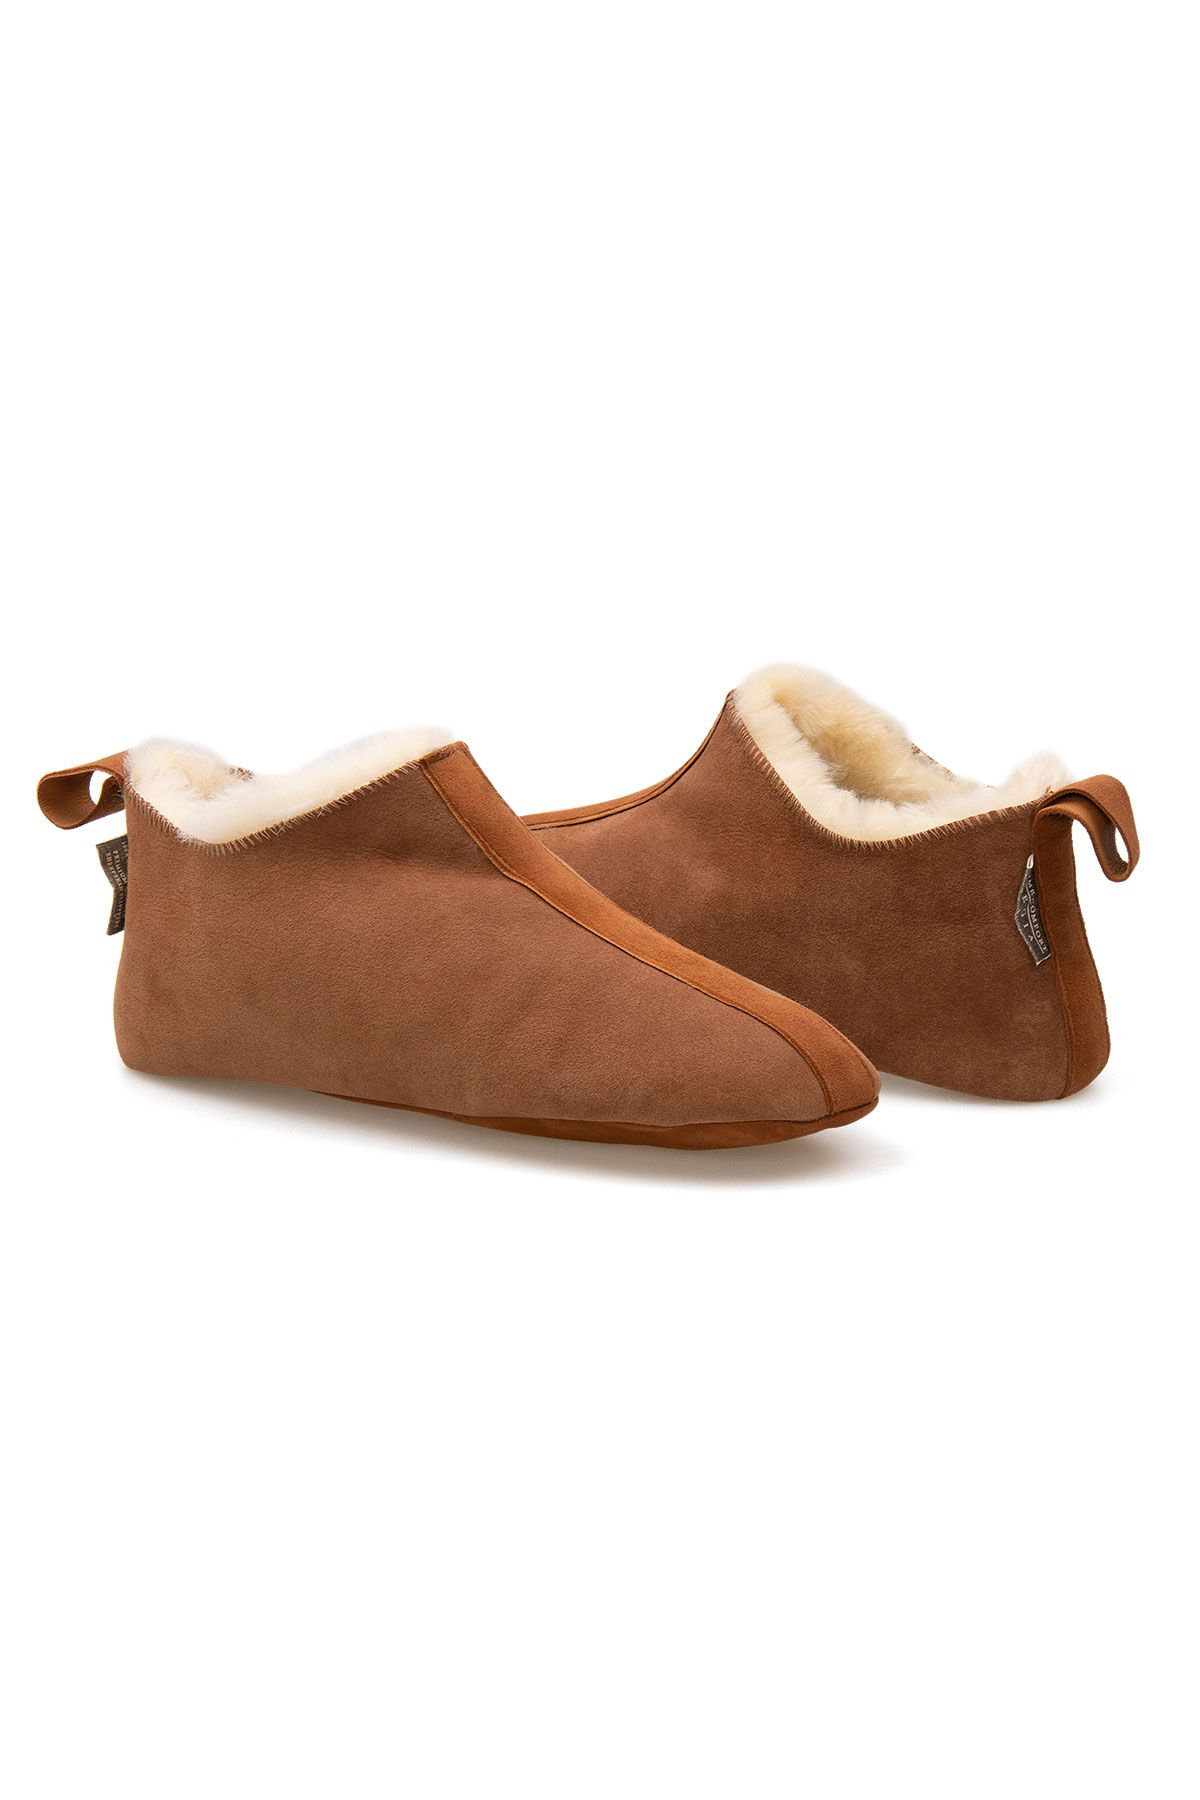 Pegia Men's Shearling House Shoes 980610 Ginger